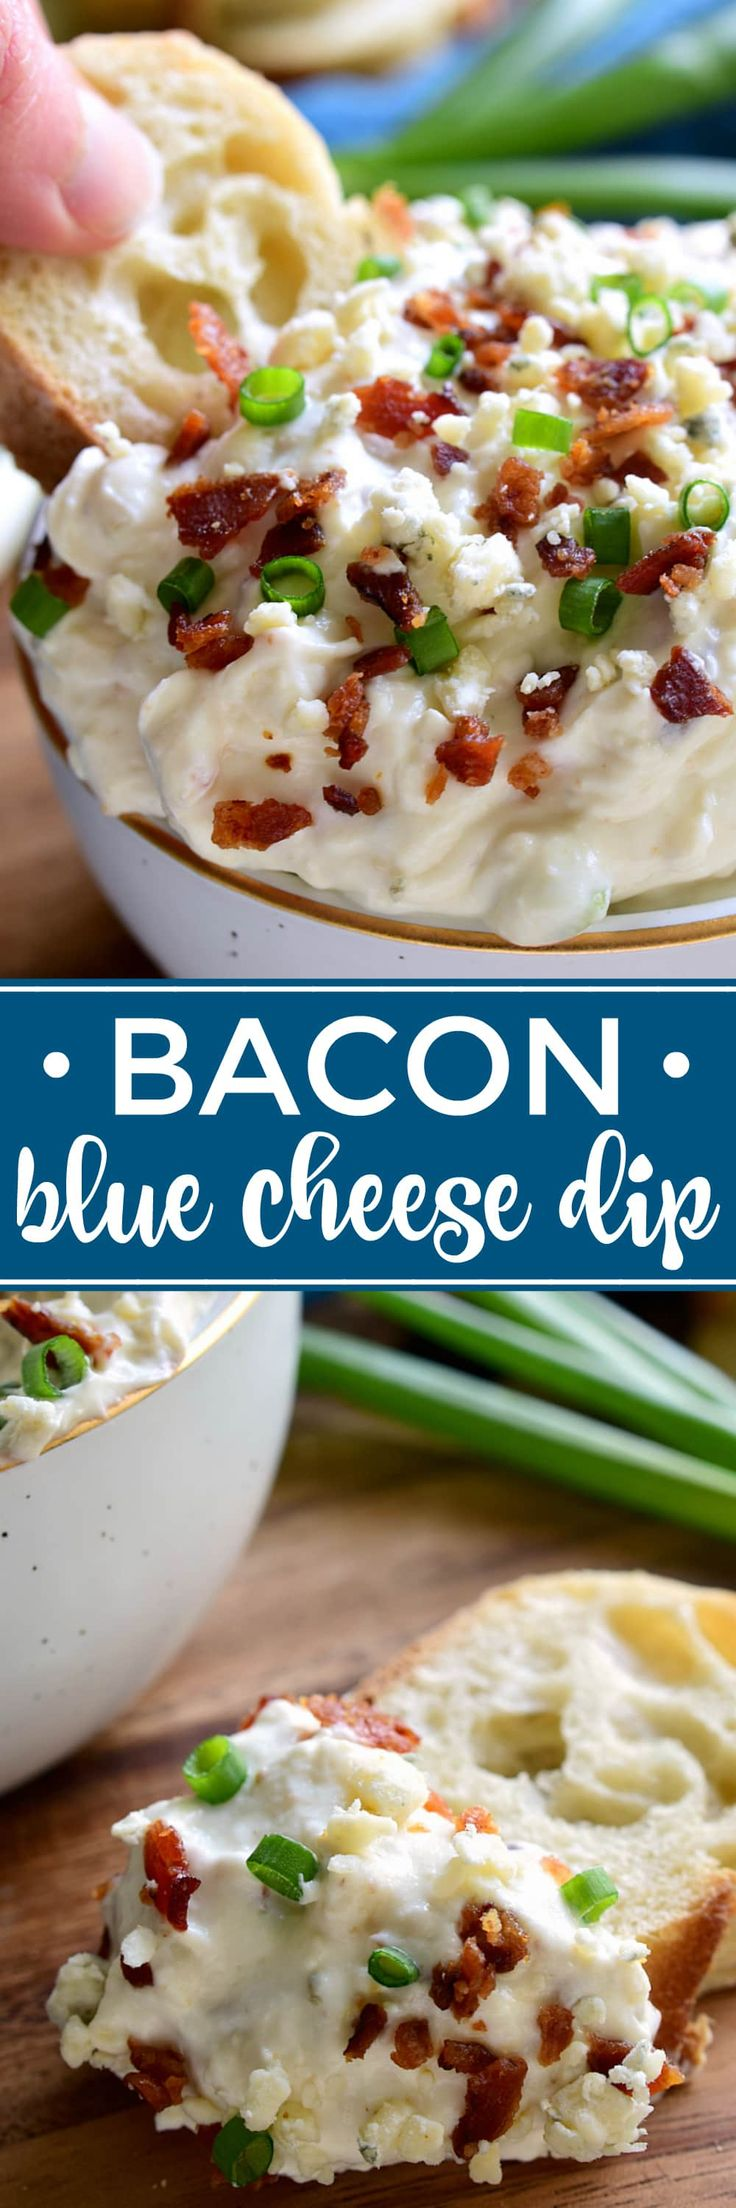 This Bacon Blue Cheese Dip is the ultimate easy party dip! Loaded with the delicious flavors of bacon and blue cheese, this dip is creamy, flavorful, and perfect for easy entertaining! (Cheese Dip Recipes)